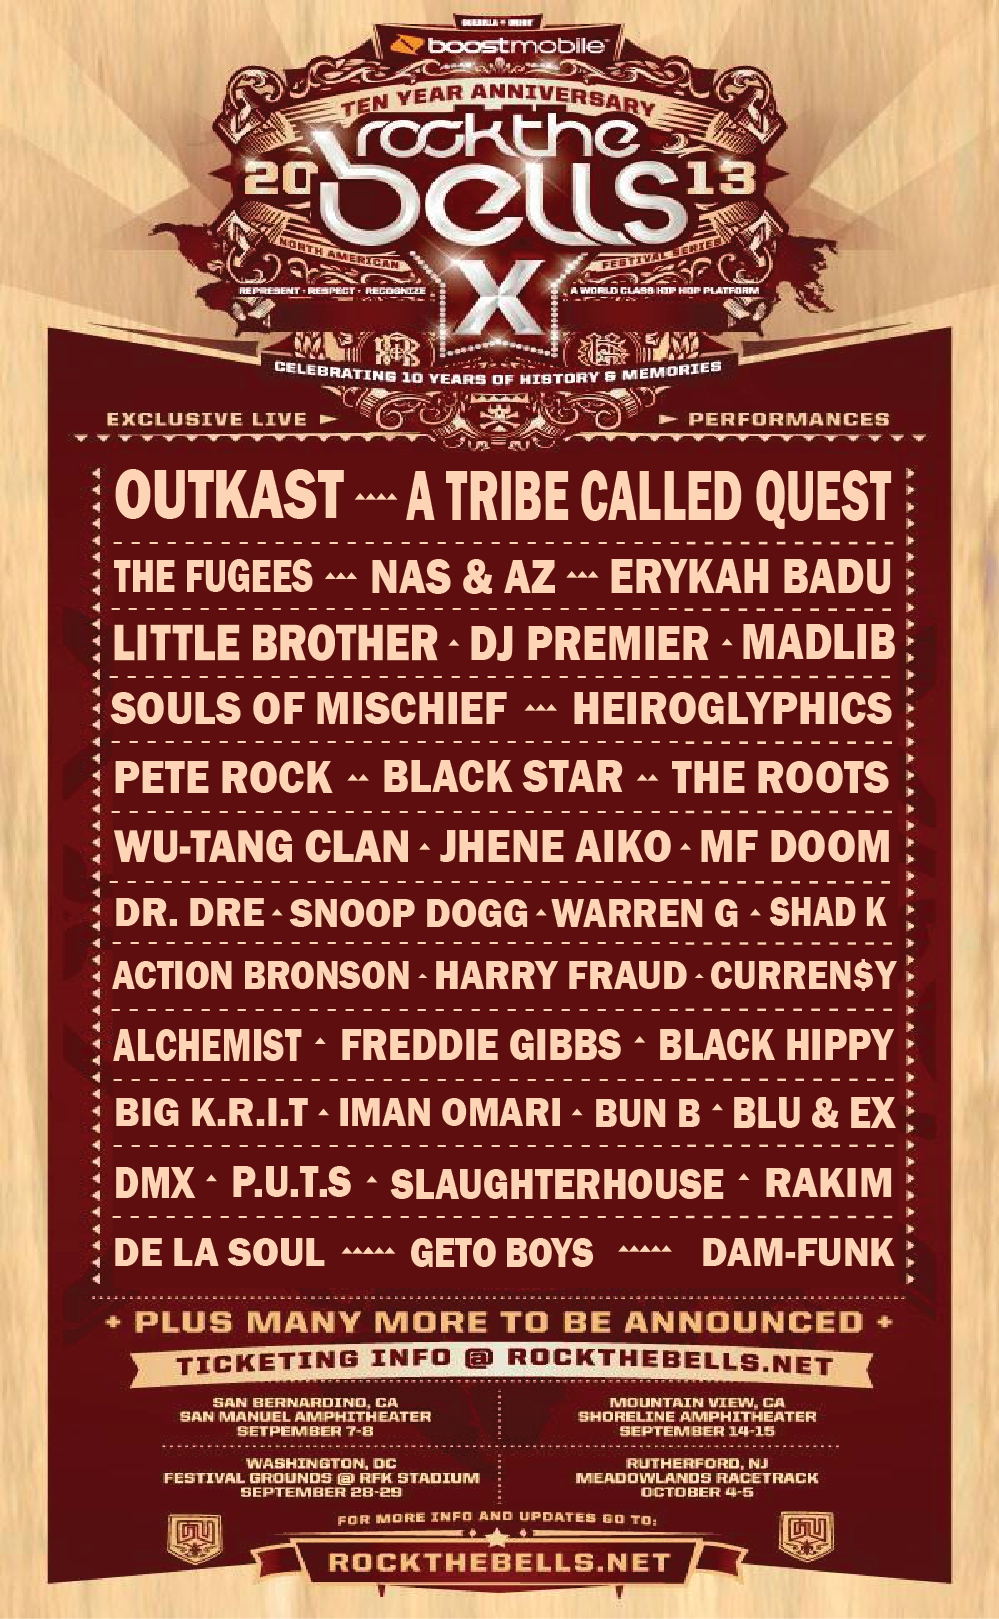 lyfestile :          capsj :         !!!         Nice lineup         MAN…we are there as soon as they say what the Chicago dates are.   Blackstar, Blu, DOOM, Slaughterhouse, De La, 'Kast, Tribe, Erykah, NaSir, Spitta, Jhene, Little Brother, KRIT, Madlib, Pete Rock & Erykah?? shiiiiiiiiiiiiiiiiiiiiiiittttttttttt.